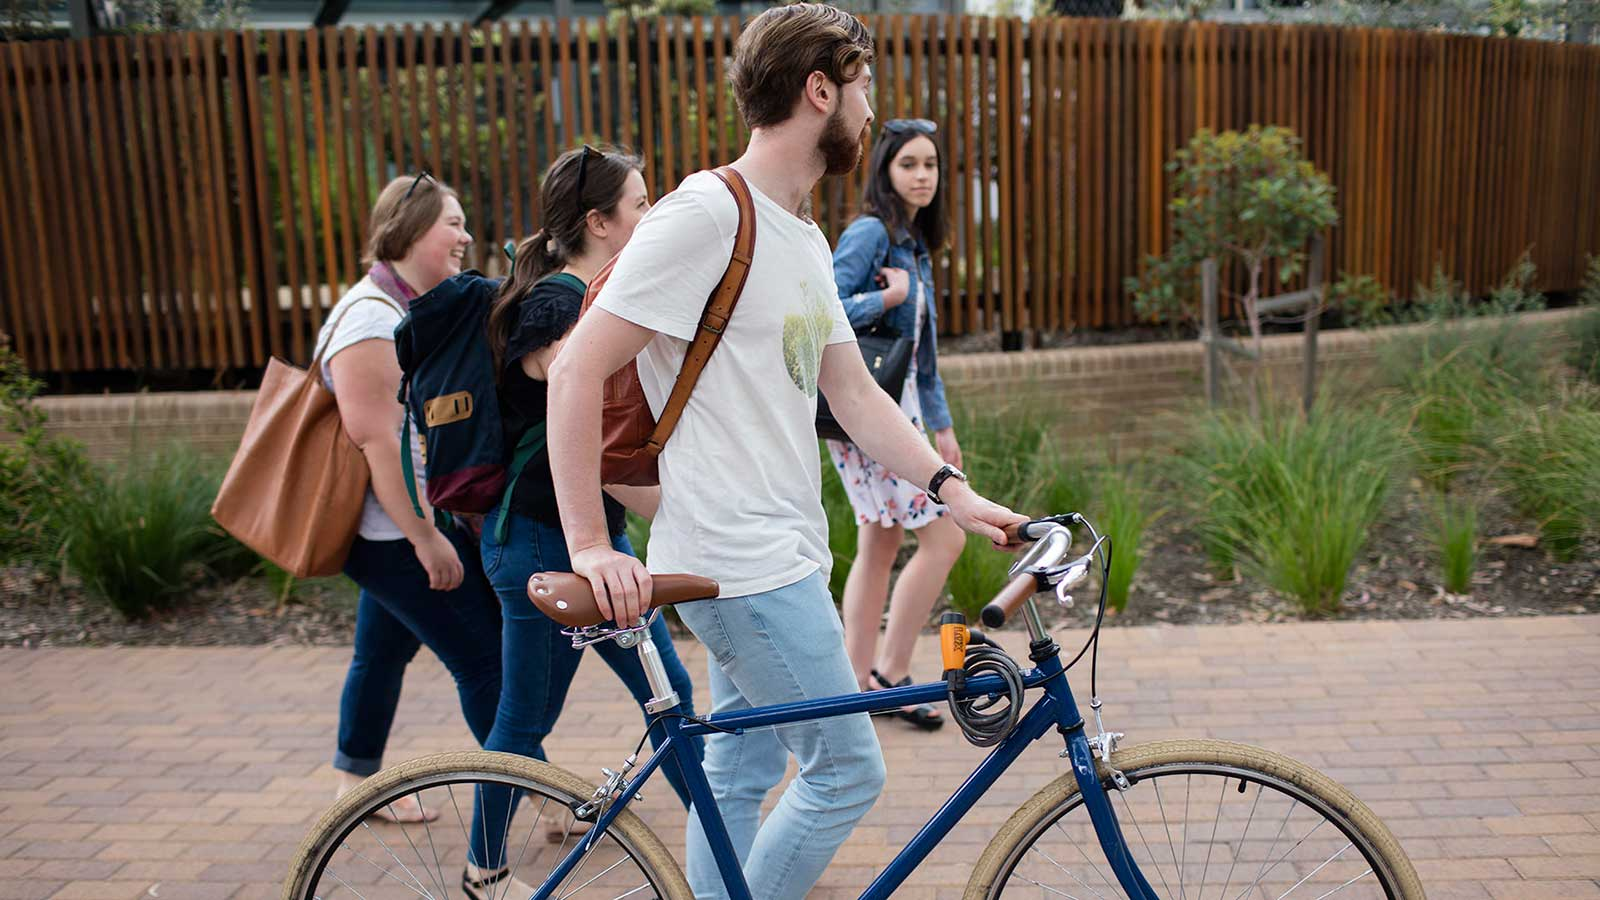 Students walking with bike